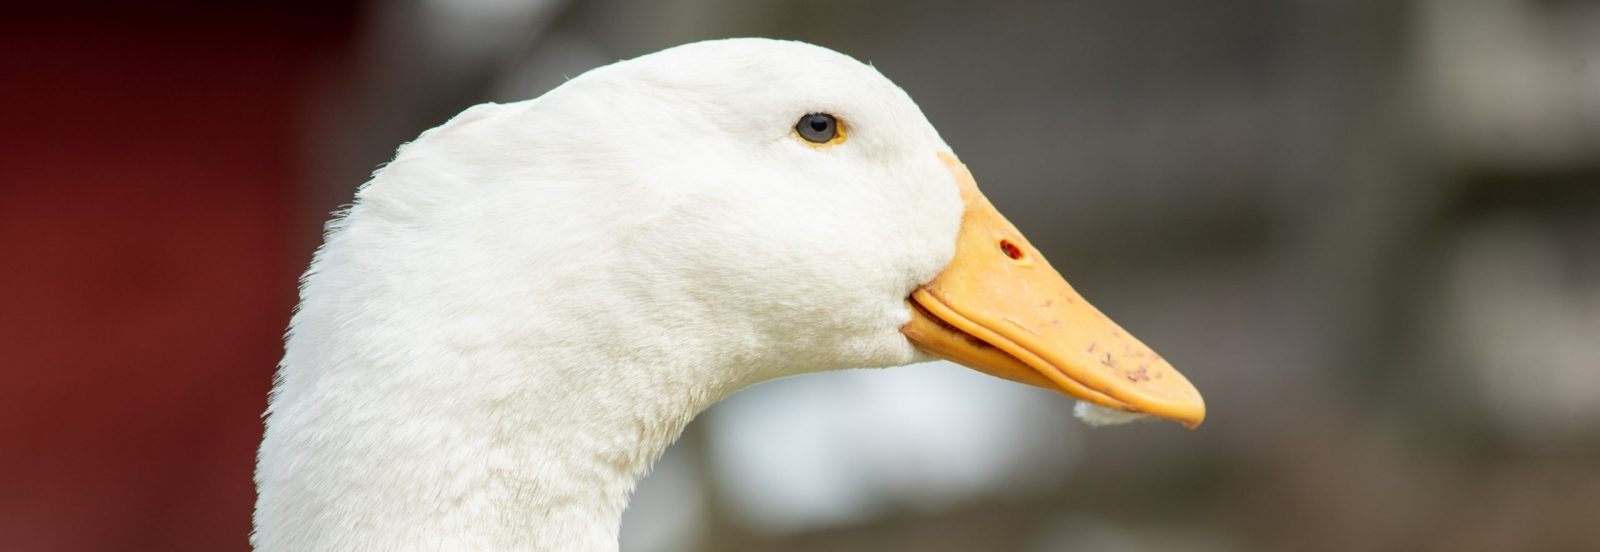 Ditto Duck at Farm Sanctuary's New York shelter